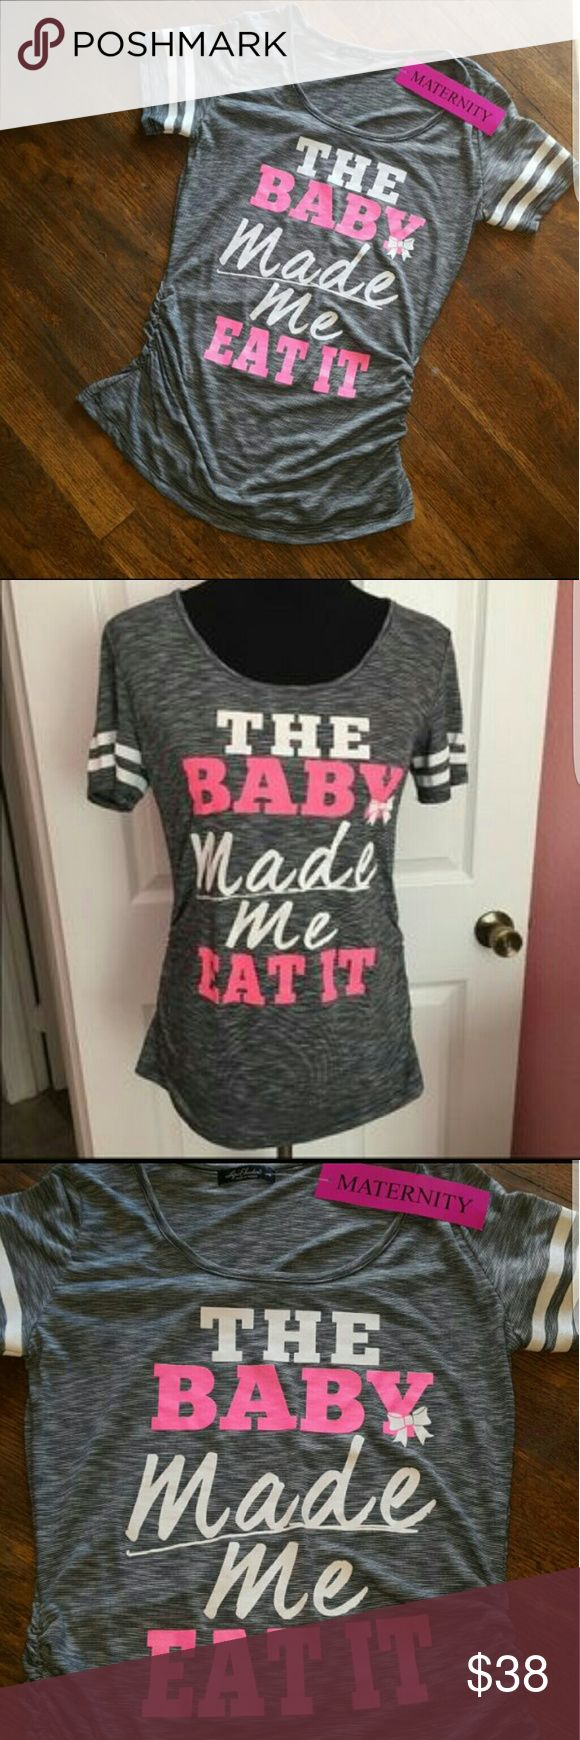 NEW Maternity SUPER cute top NEW never worn maternity shirt! Maternity tag still attached! Super cute tee shirt! Size small but does have the stretchy sides. I wish I was prego so I could wear it!!! Nice comfy feel. Brand new. There's a lot of shirts out there with this saying but not as cute as this one! Perfect shirt to pass along after baby:) Tops Tees - Short Sleeve